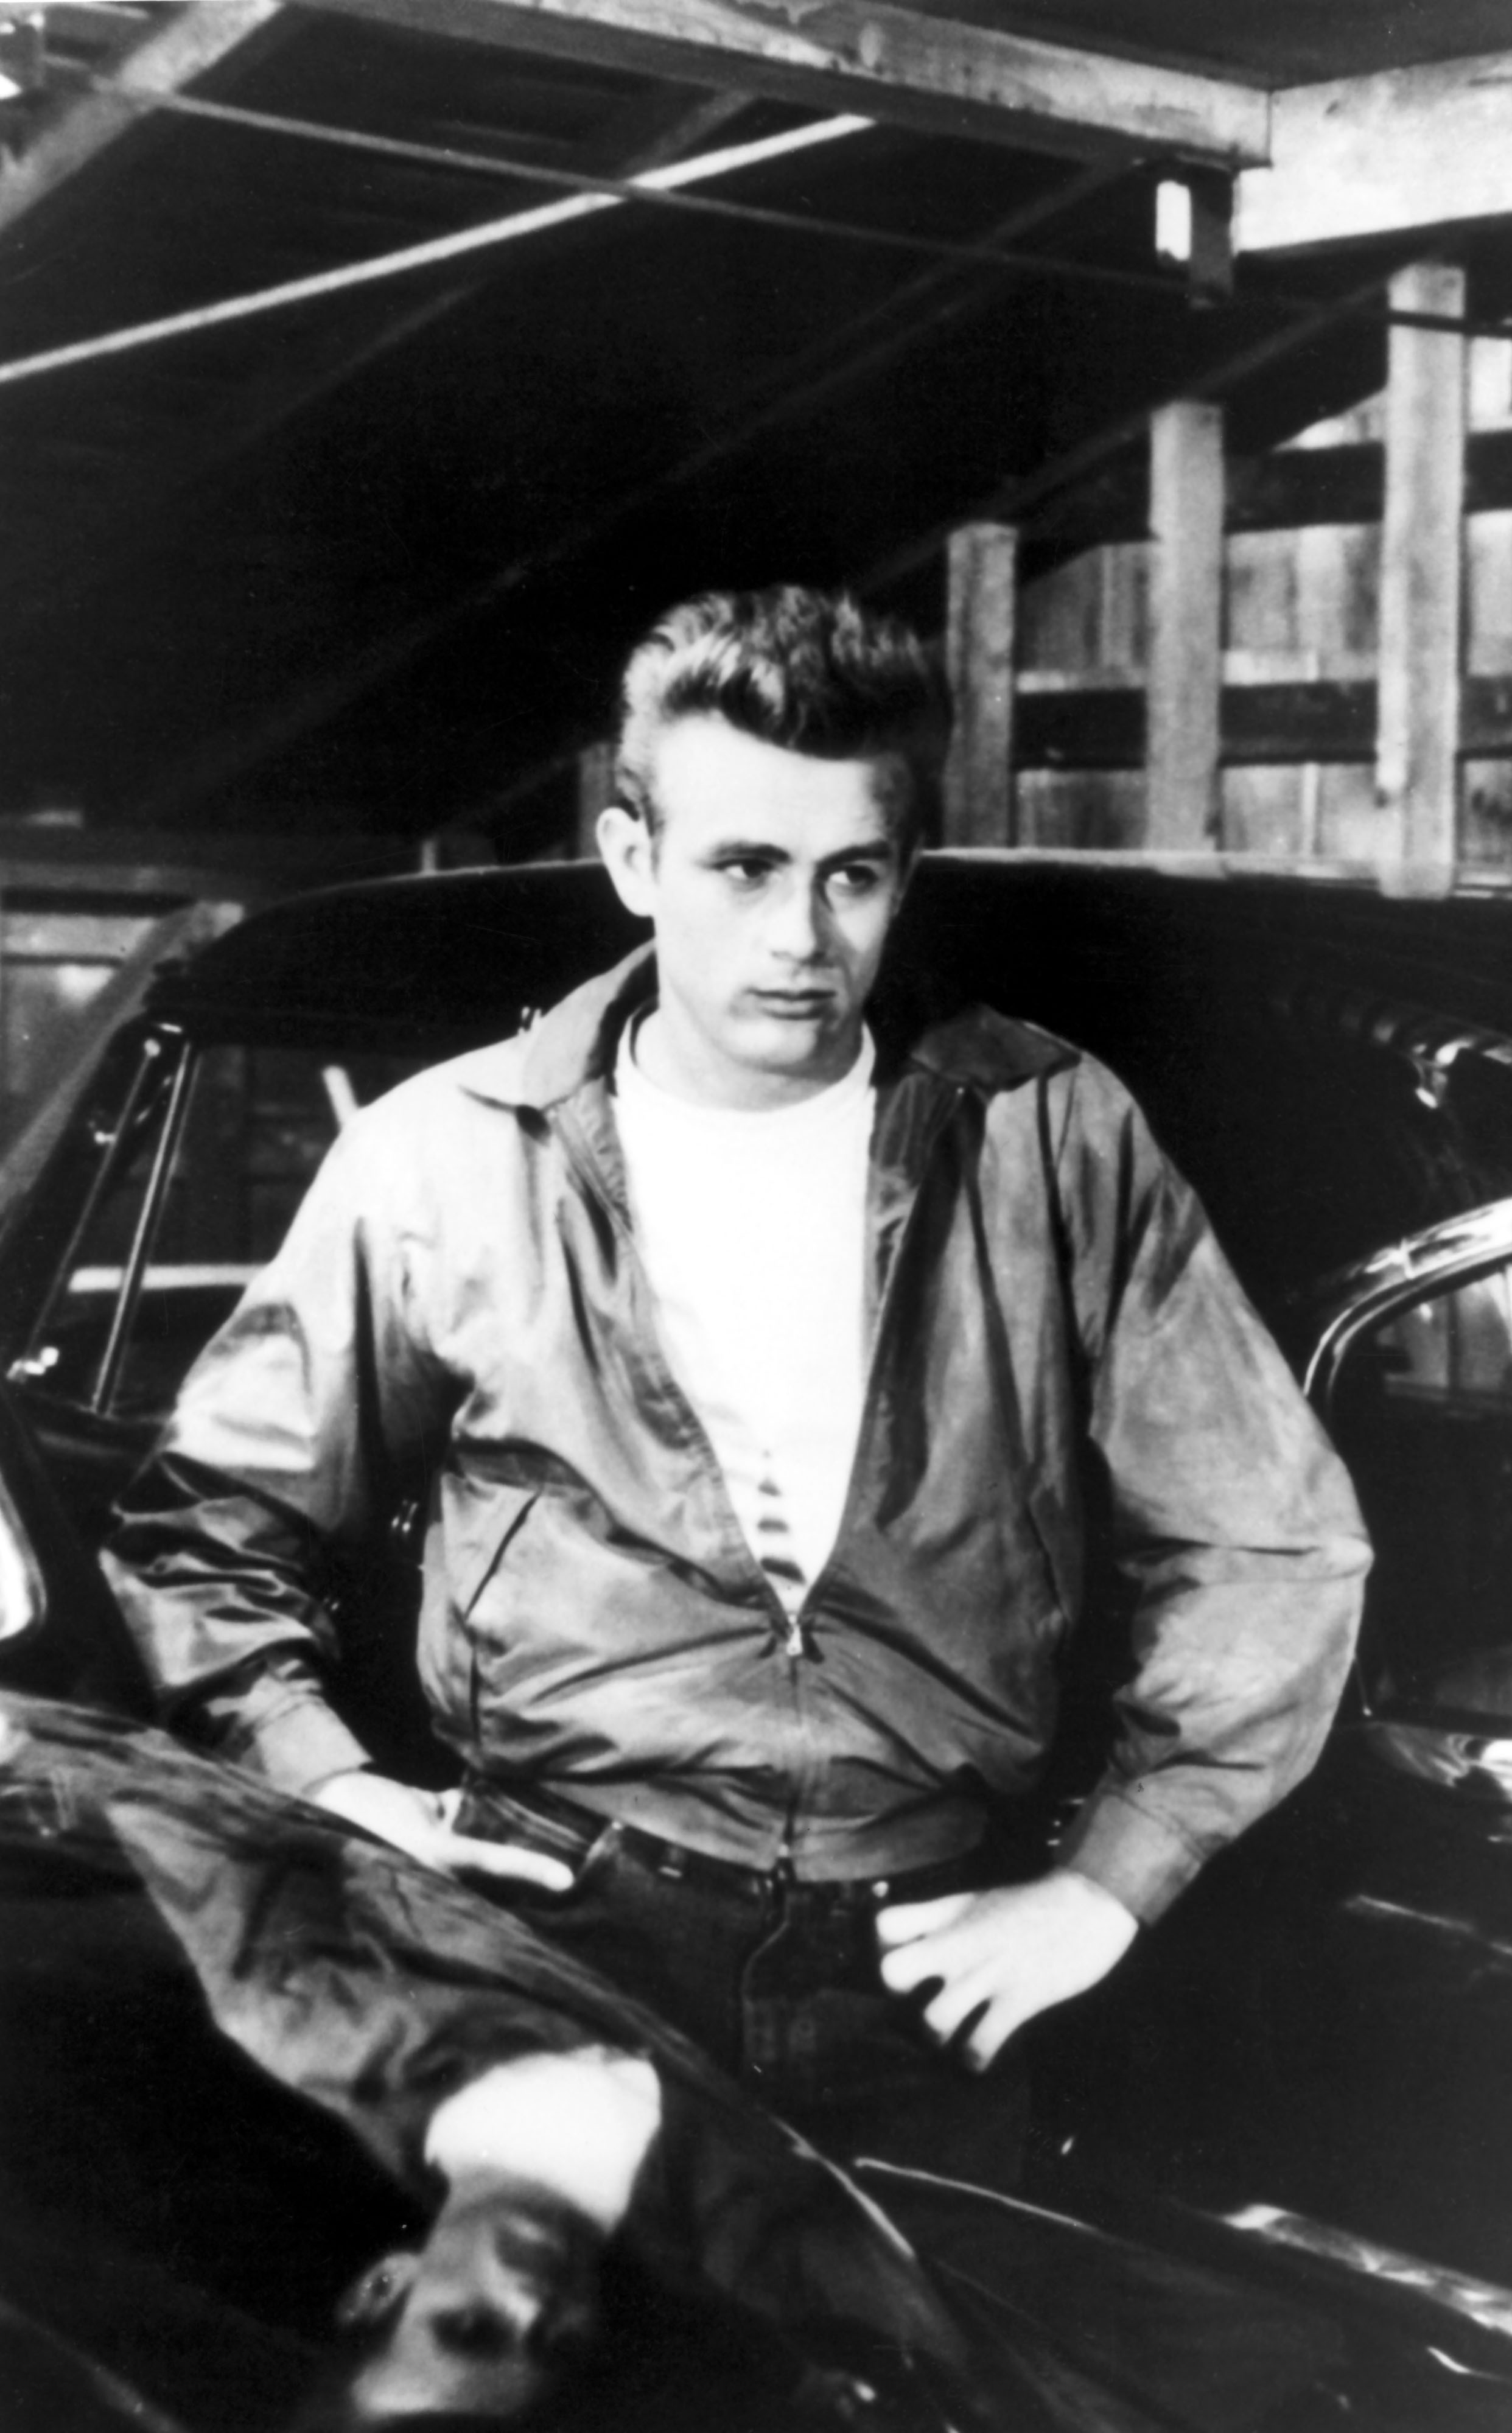 James Dean in pictures